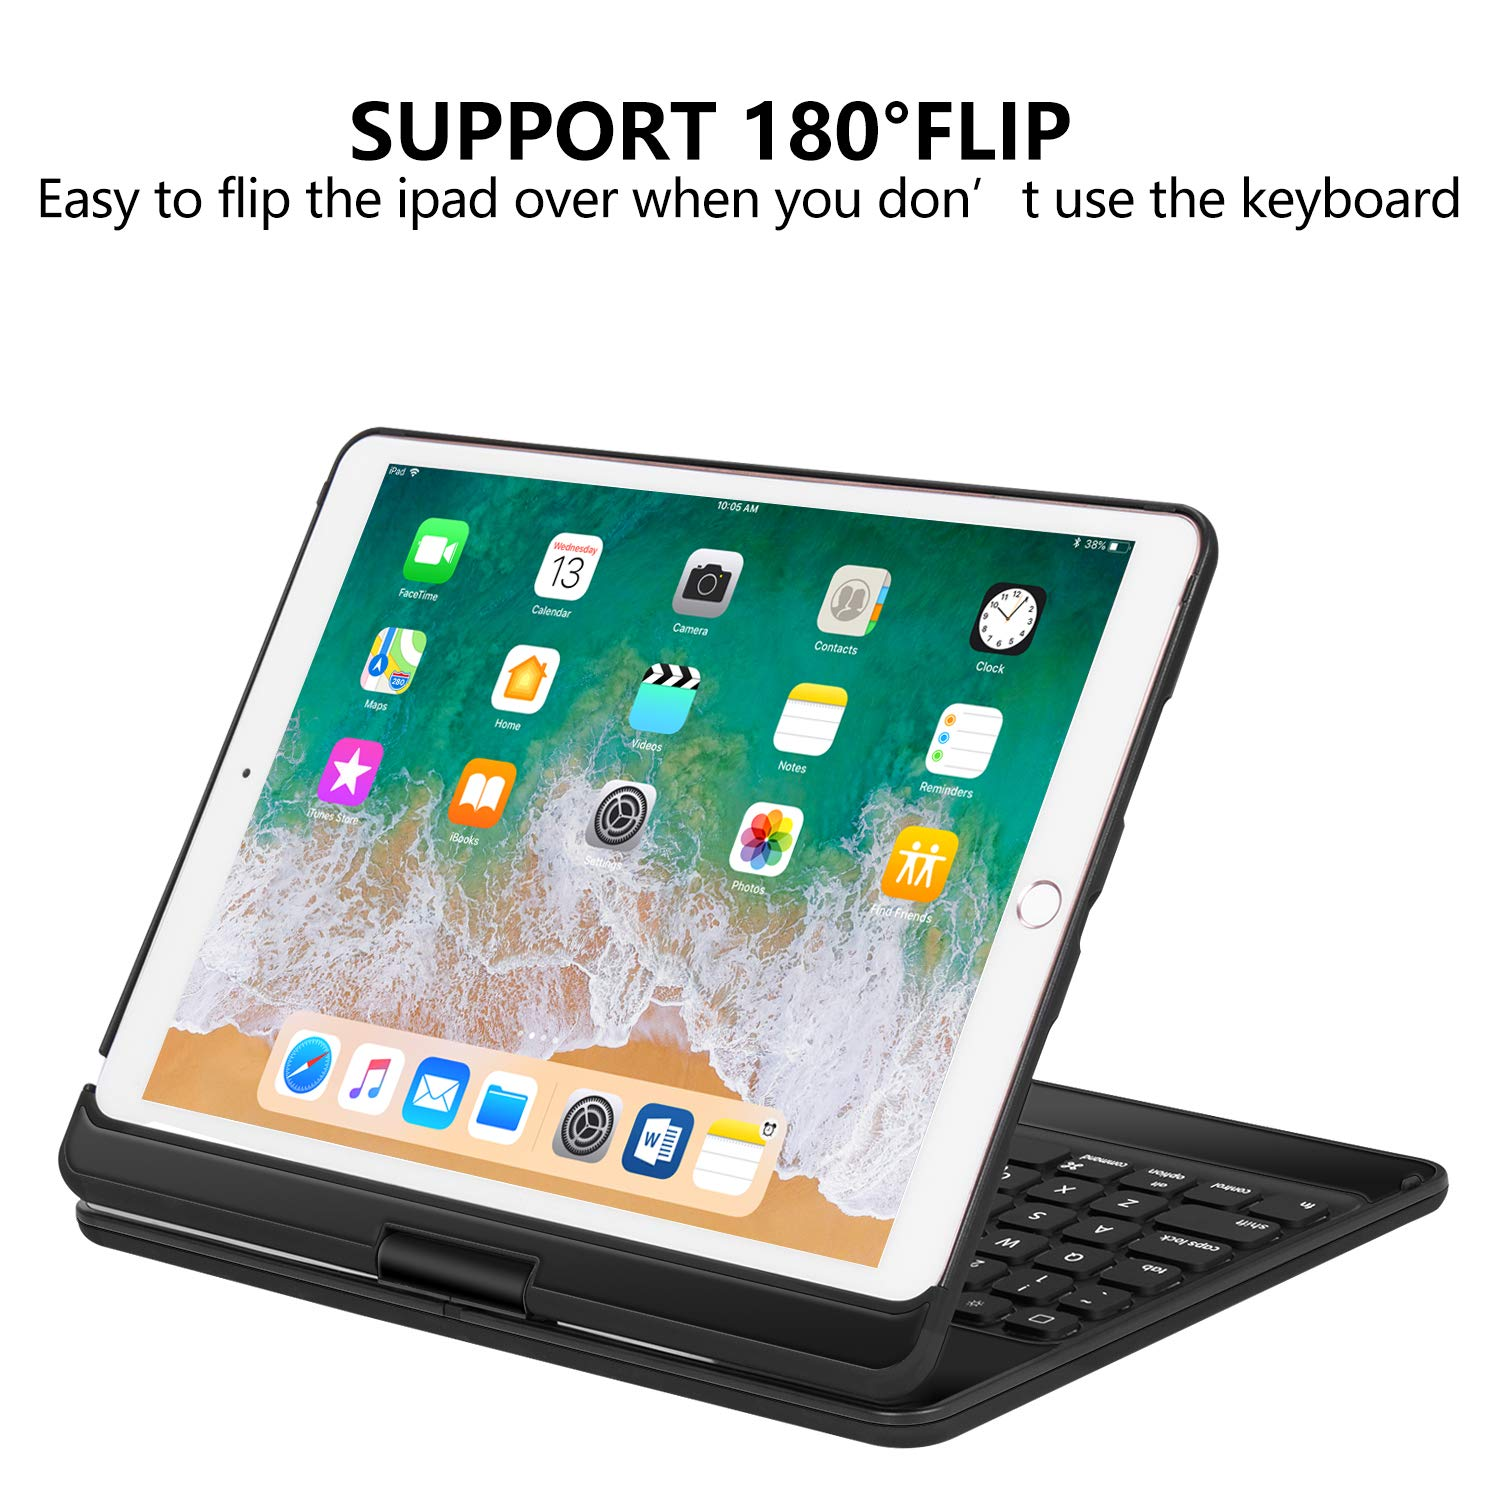 iPad Pro 10.5 Keyboard Case for iPad Pro 10.5 inch 2017 /iPad Air 10.5 (3rd Gen) 2019, 360 Rotate BT/Wireless Backlit Keyboard Case/Smart Auto Sleep-Wake Case/Ultra-Thin Keyboard Cover (Black) by Earto (Image #6)